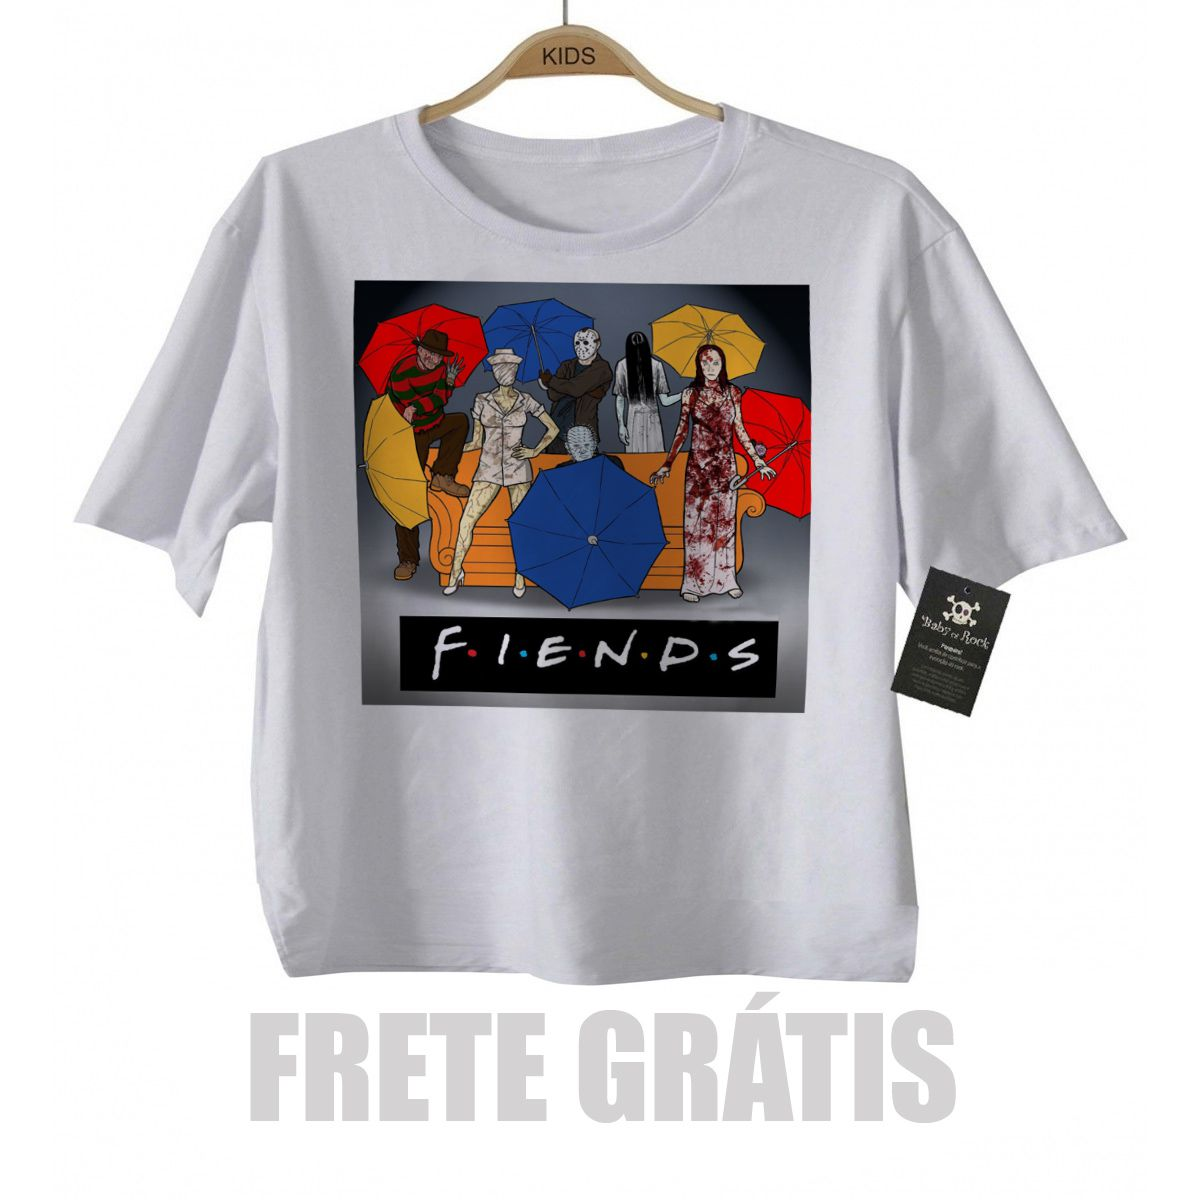 Camiseta Infantil - Seriado | Friends | Terror  - Baby Monster S/A